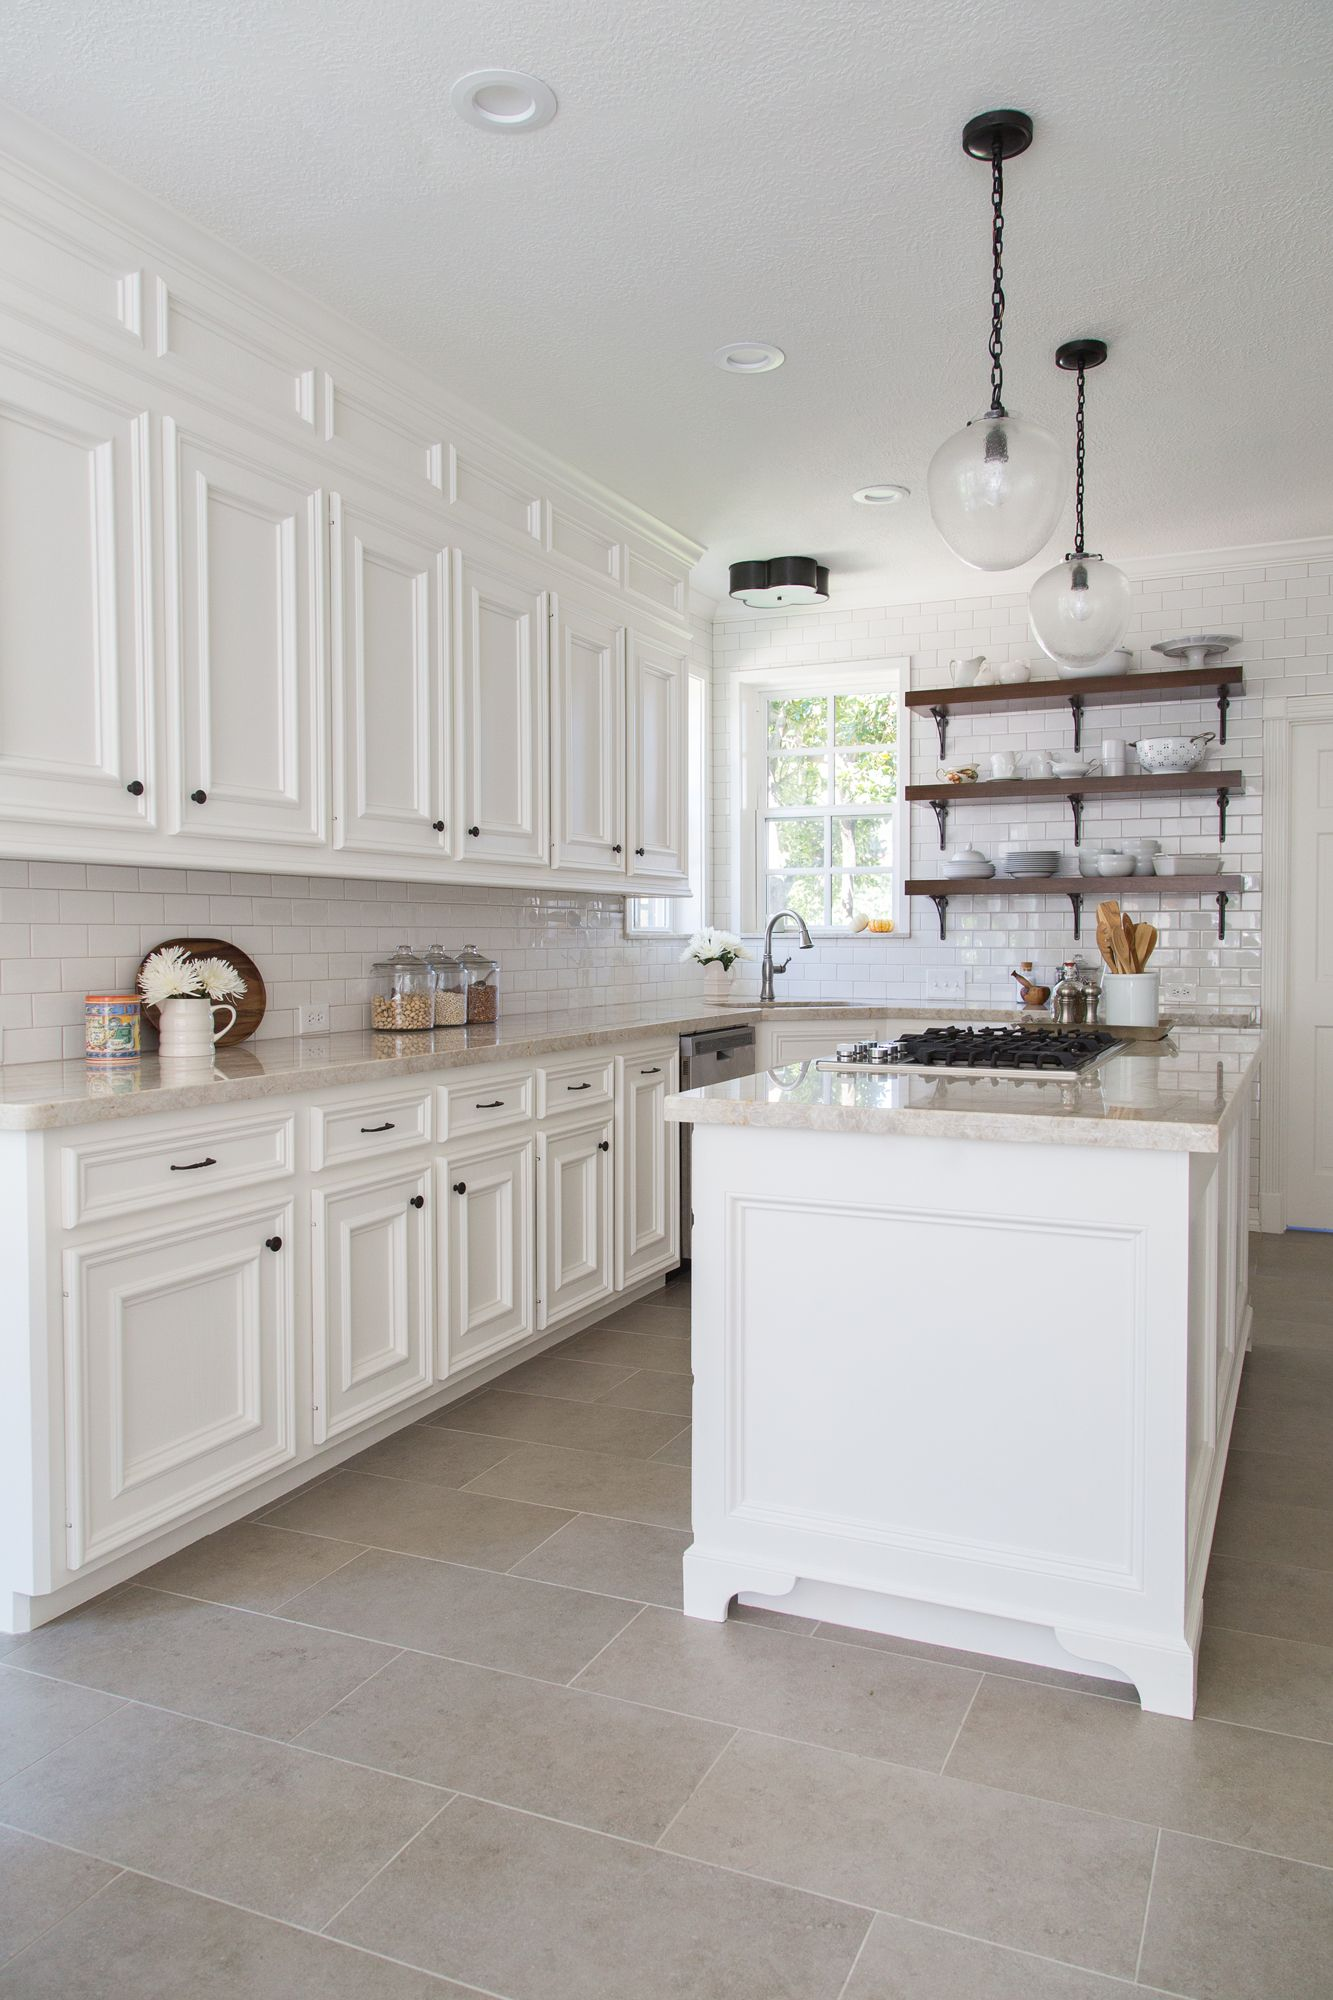 kitchen flooring with tiles farmhouse kitchen remodel | interior designer: carla aston | photographer: XNQNSDB